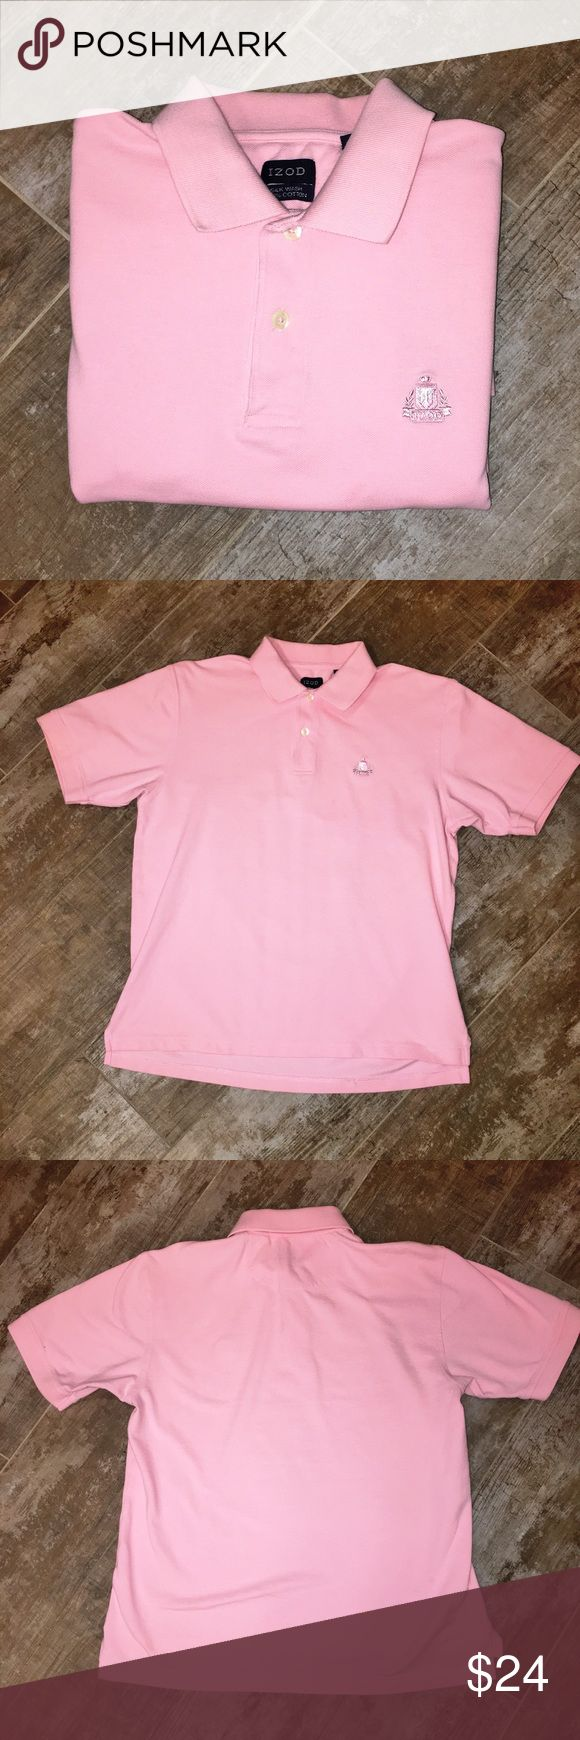 Izod Men's Pink Polo Shirt Size M Izod Men's Pink Polo Shirt Size M - Excellent Condition Izod Shirts Polos